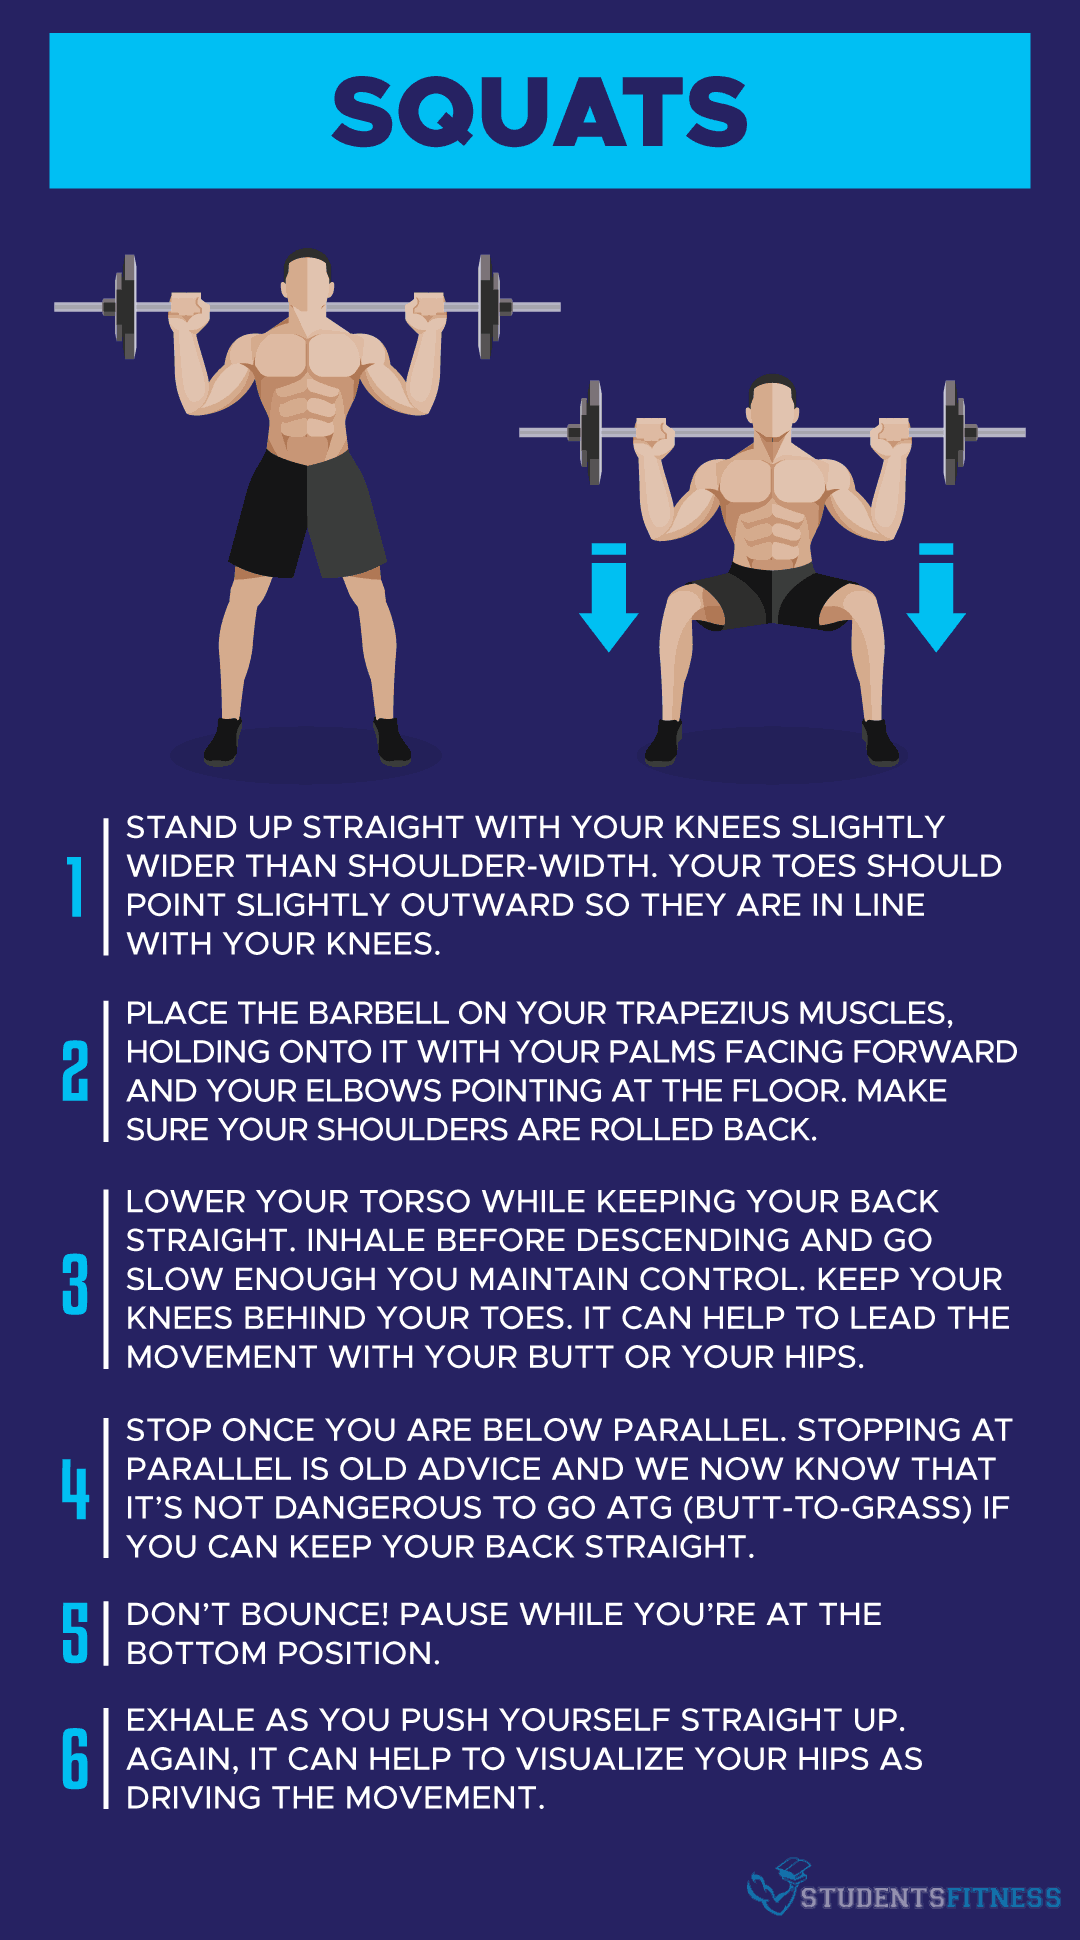 How to Do the Squat Exercise - Students Fitness